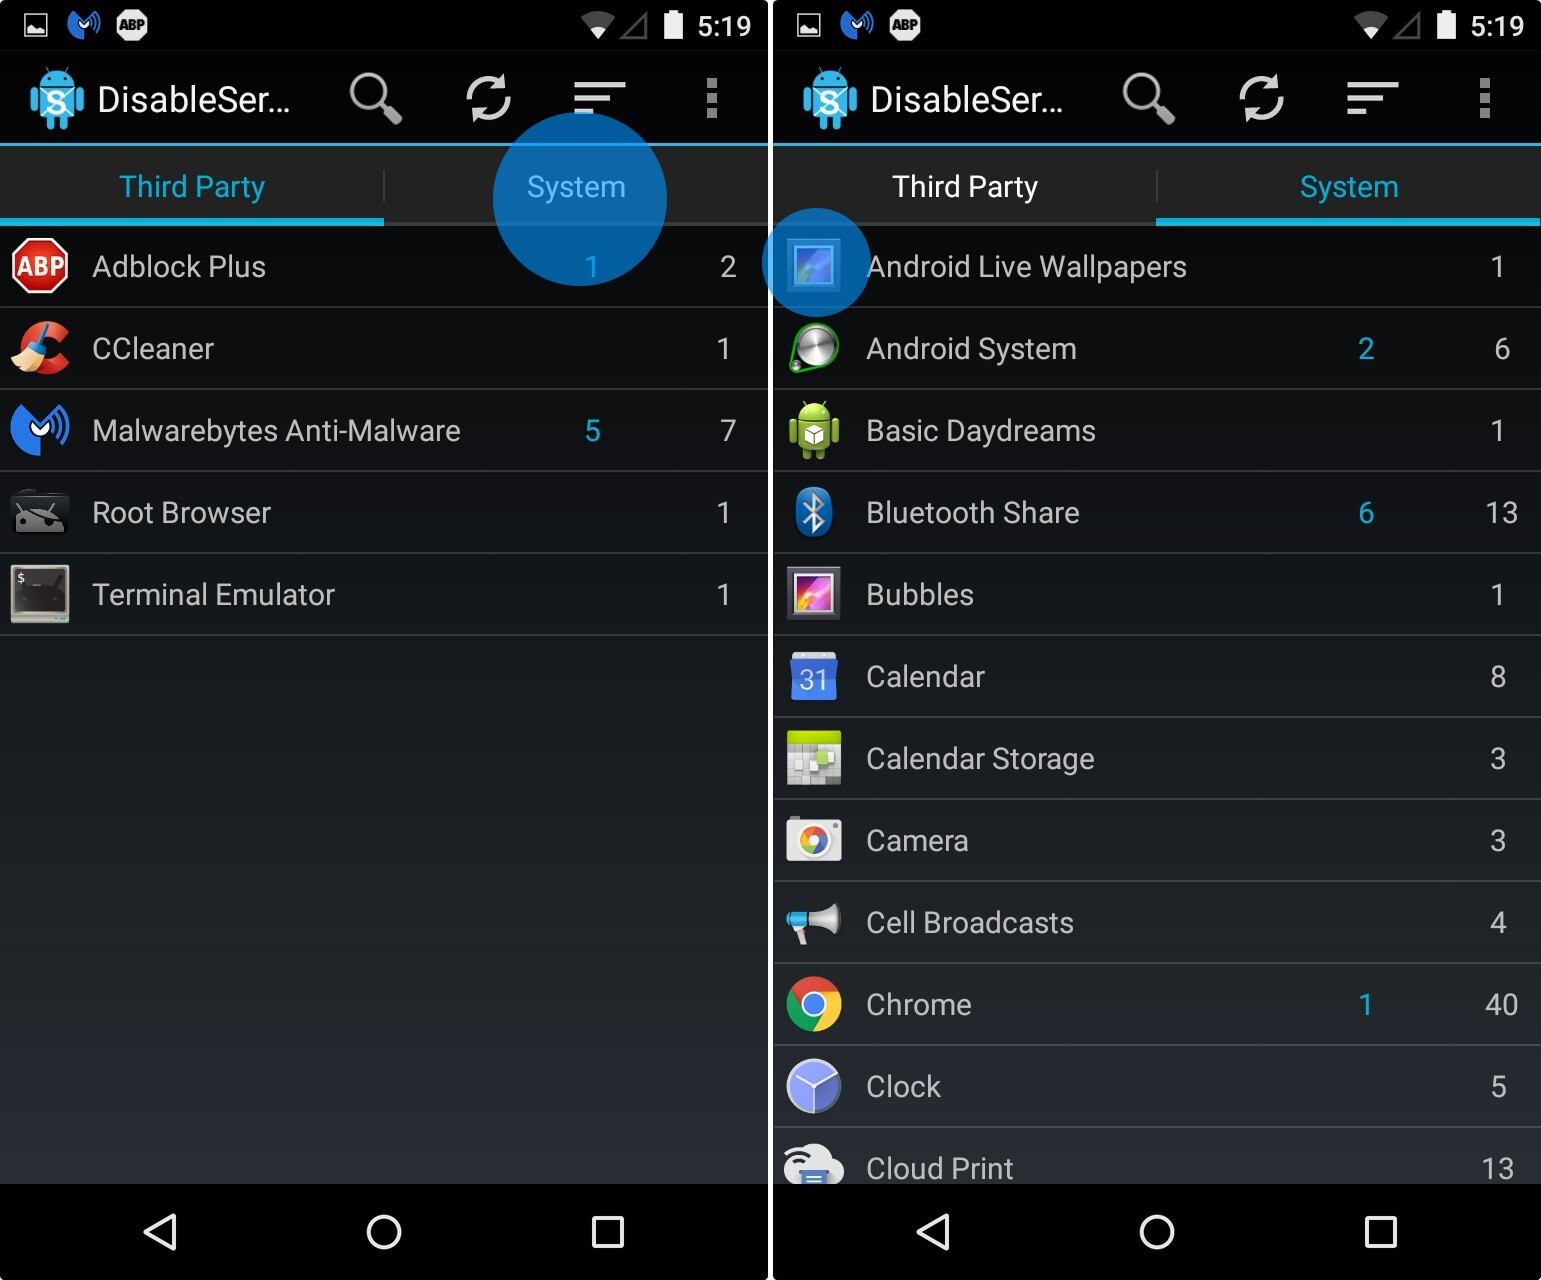 How To Disable Google Services And System Apps You Aren't Using On Android (